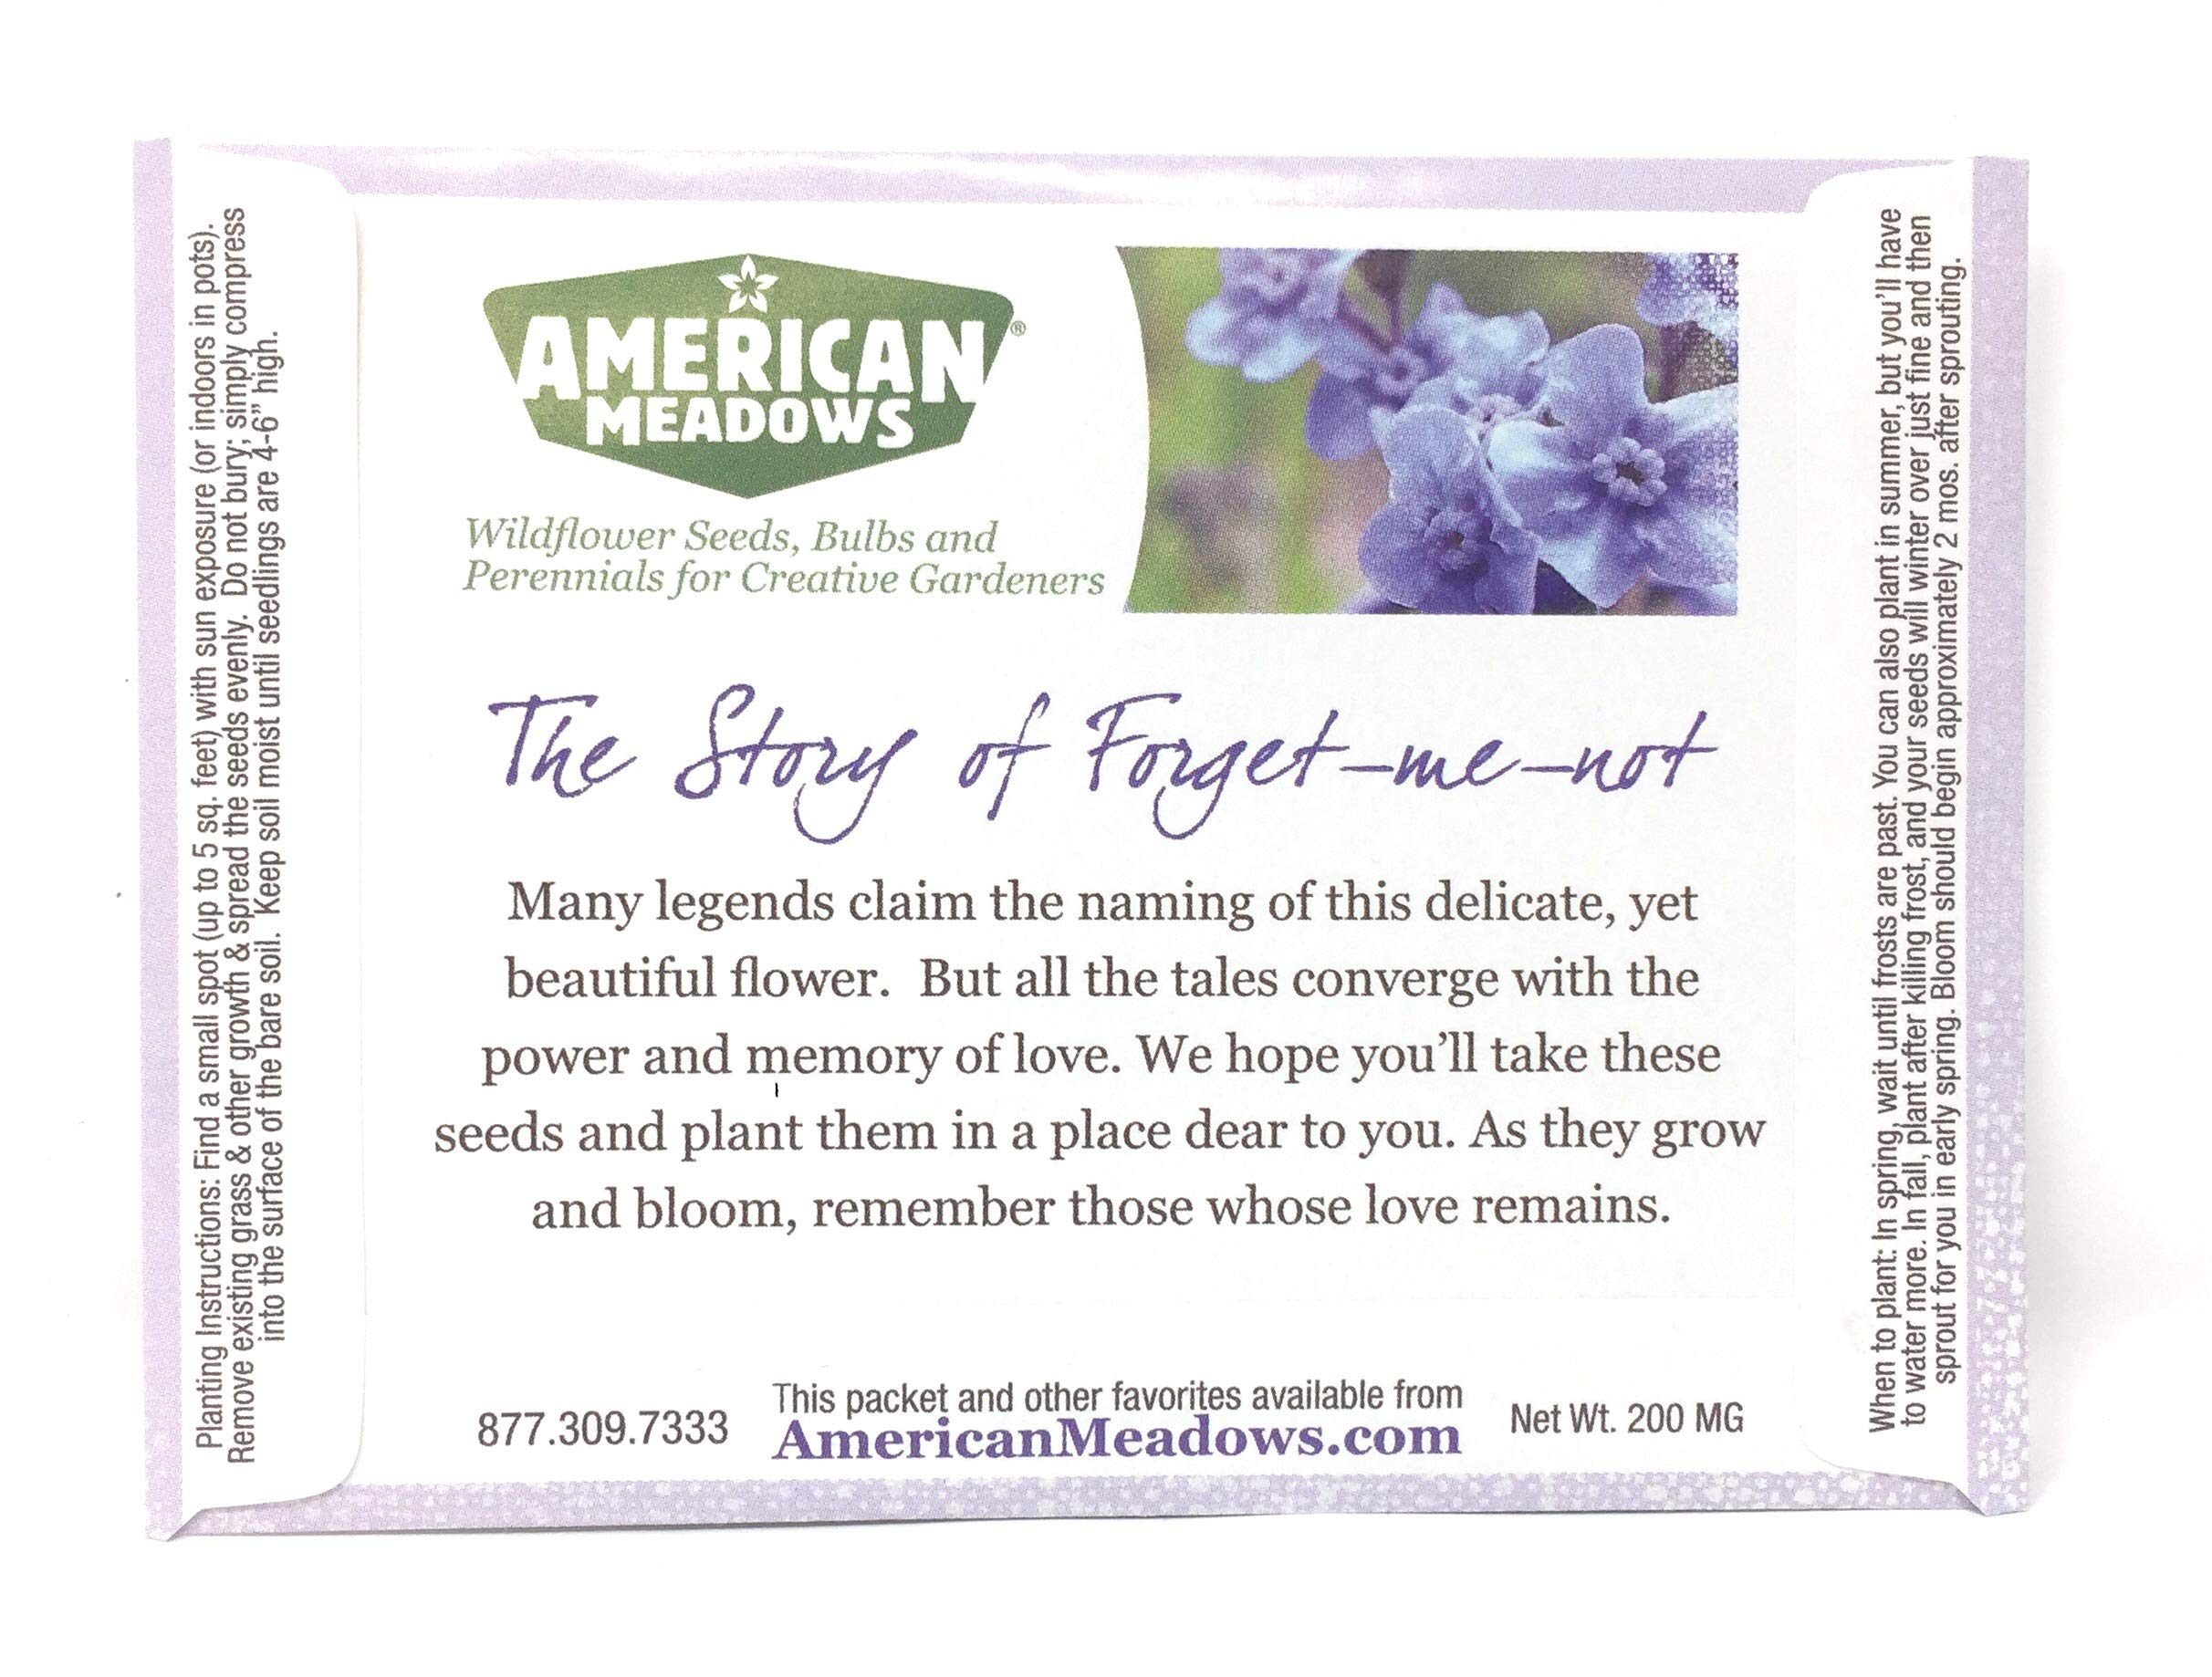 in Loving Remembrance - Individual Forget Me Not Flower Seed Packet Favors - Ready to Give - Pack of 20 by American Meadows (Image #2)